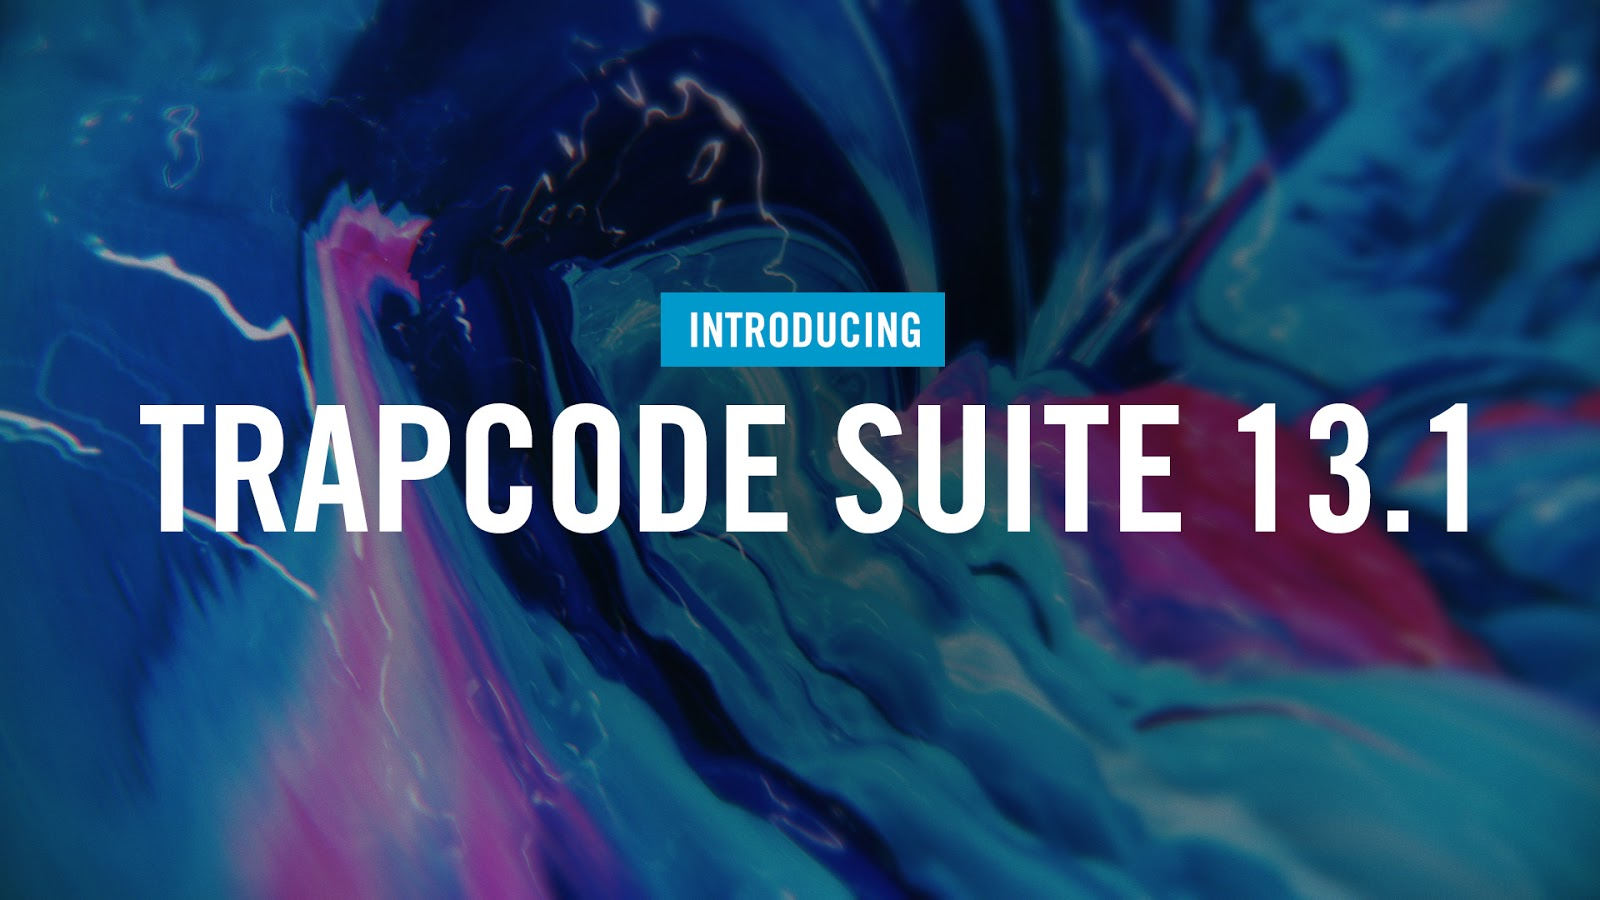 IT Việt Nam: Download Trapcode Suite 13 1 1 Full Crack - Red